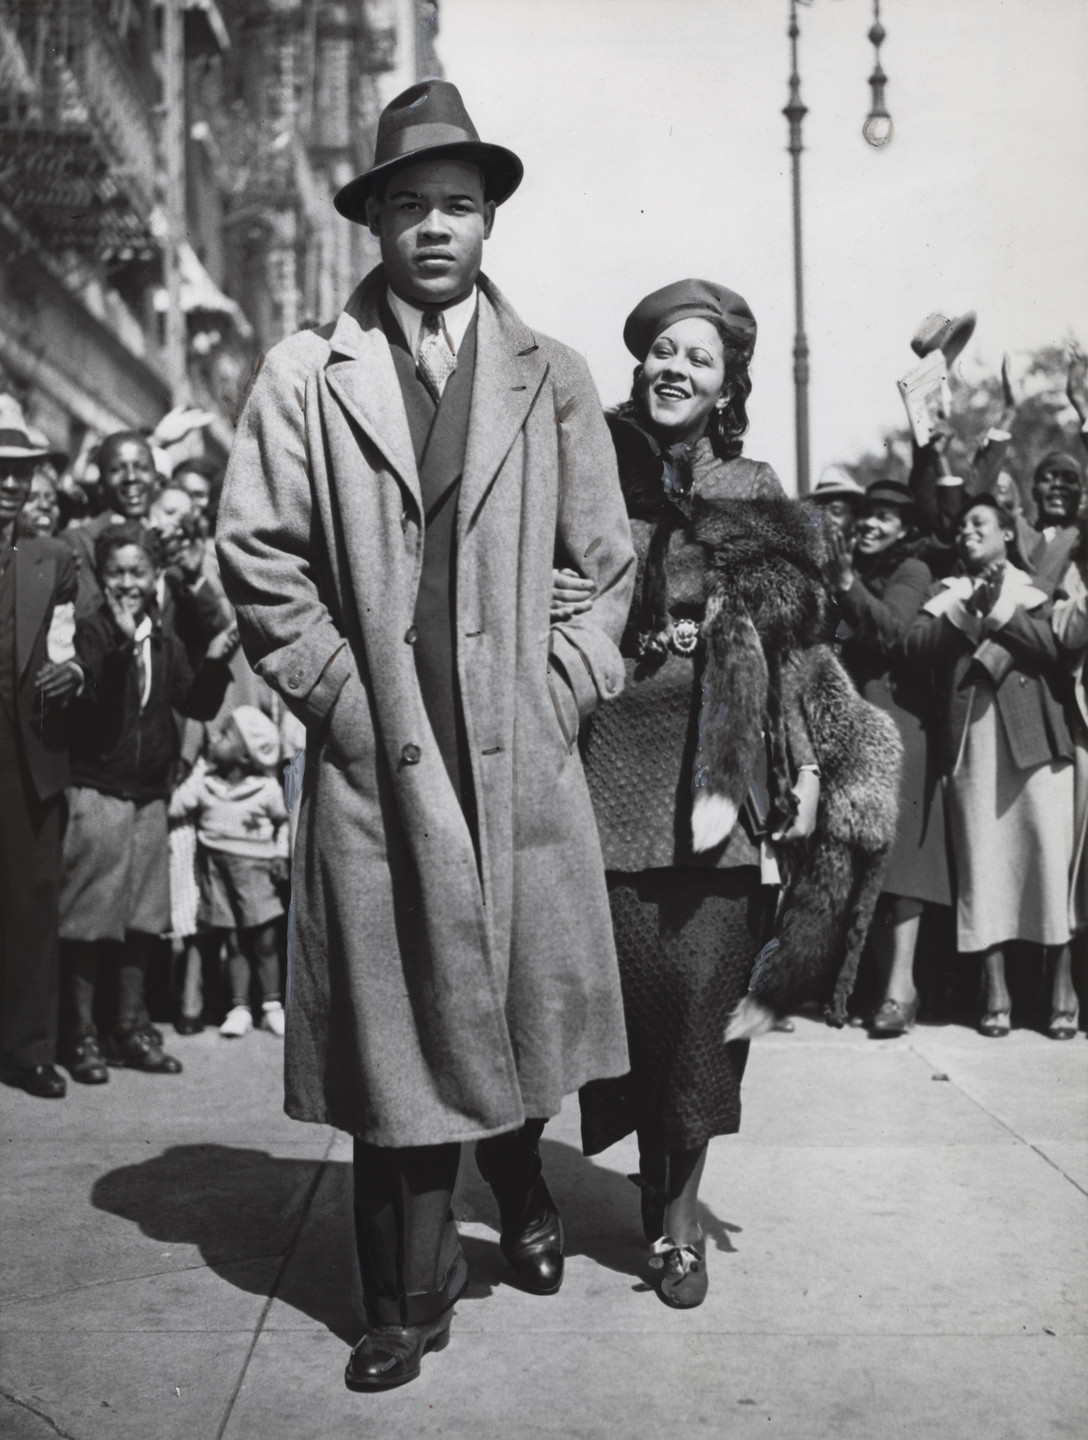 Times Wide World Photos. Mr. and Mrs. Joe Louis Out for a Stroll. September 25, 1935